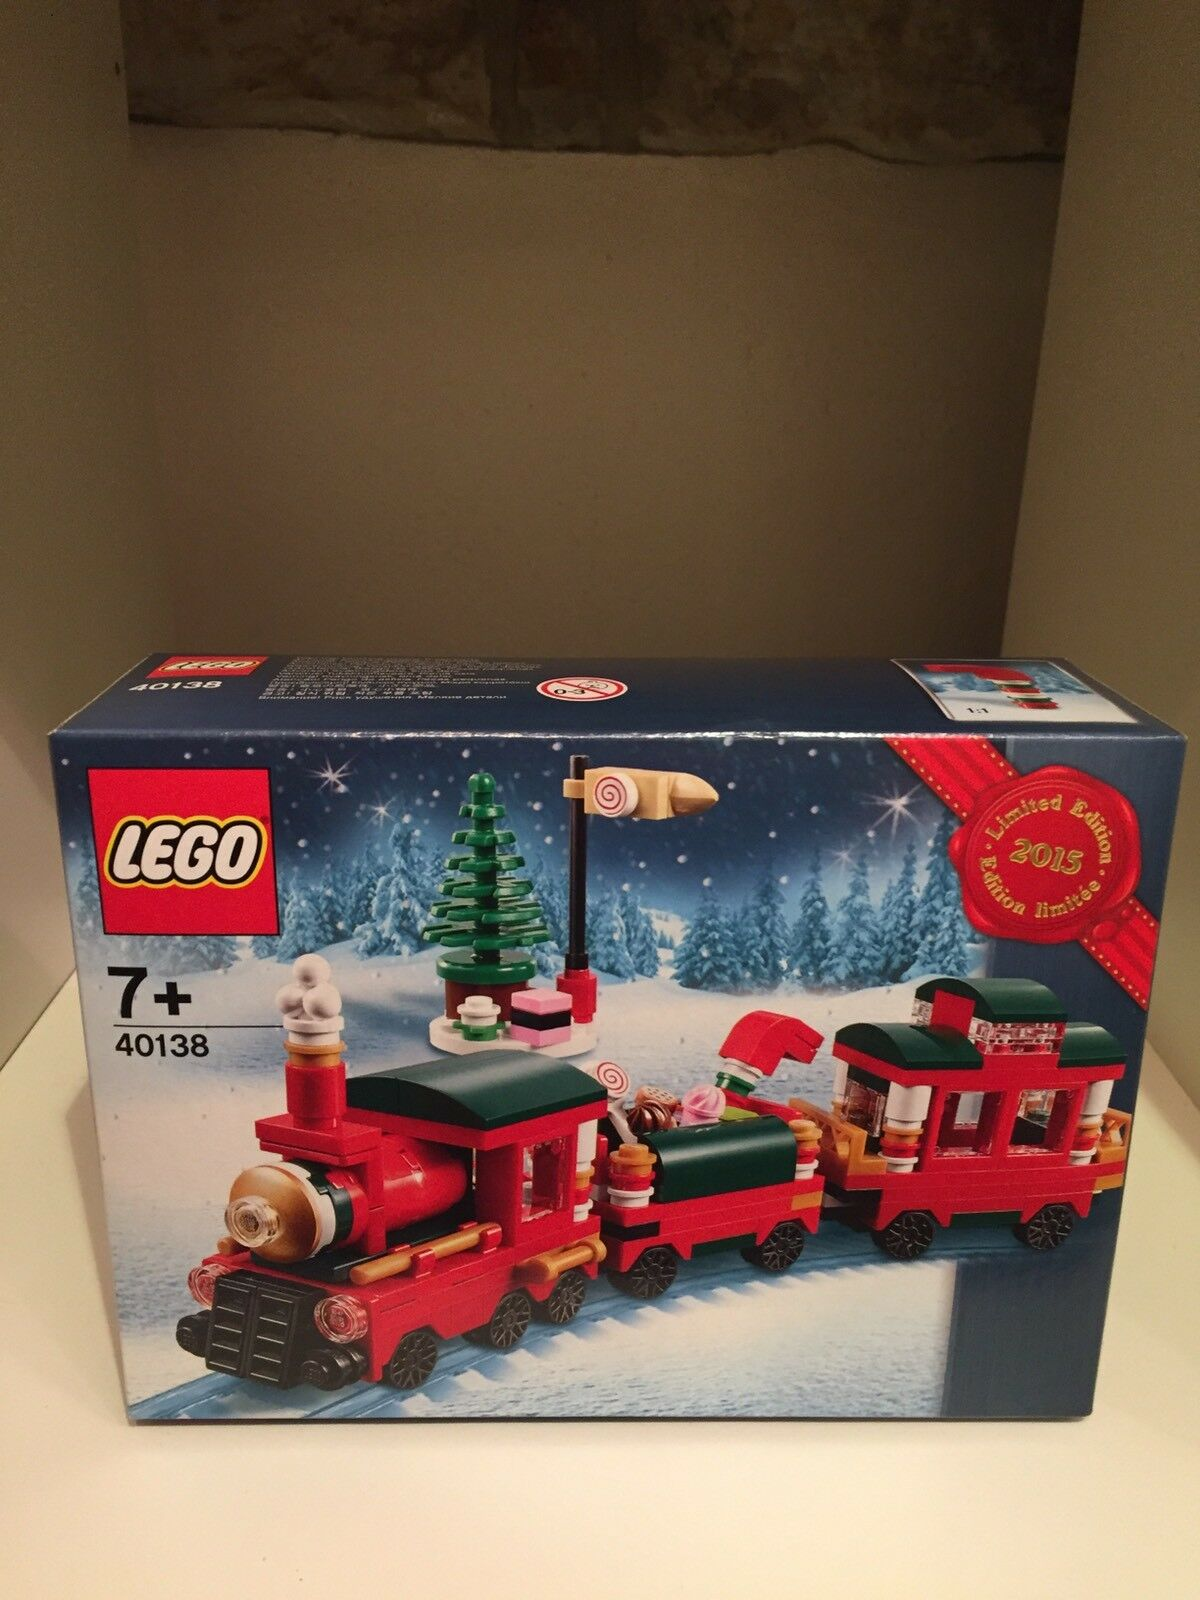 LEGO CHRISTMAS TRAIN 40138 LIMITED EDITION EXCLUSIVE HOLIDAY 2015 NEW SEALED